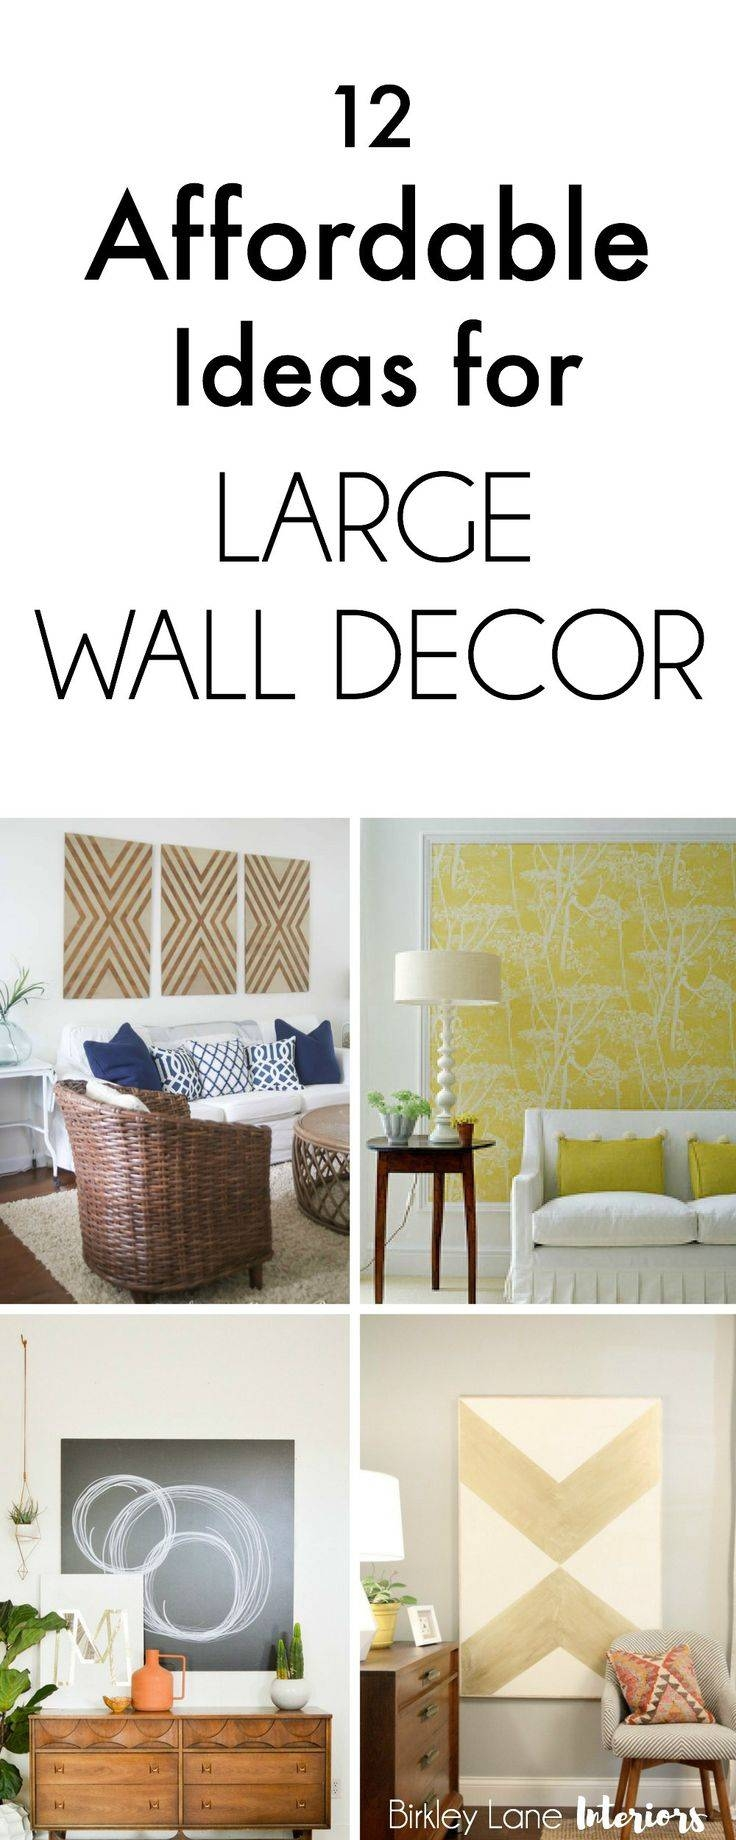 Best 25+ Blank Walls Ideas On Pinterest | Large Wall Pictures With Most Up To Date Wall Art Decor For Family Room (View 10 of 20)